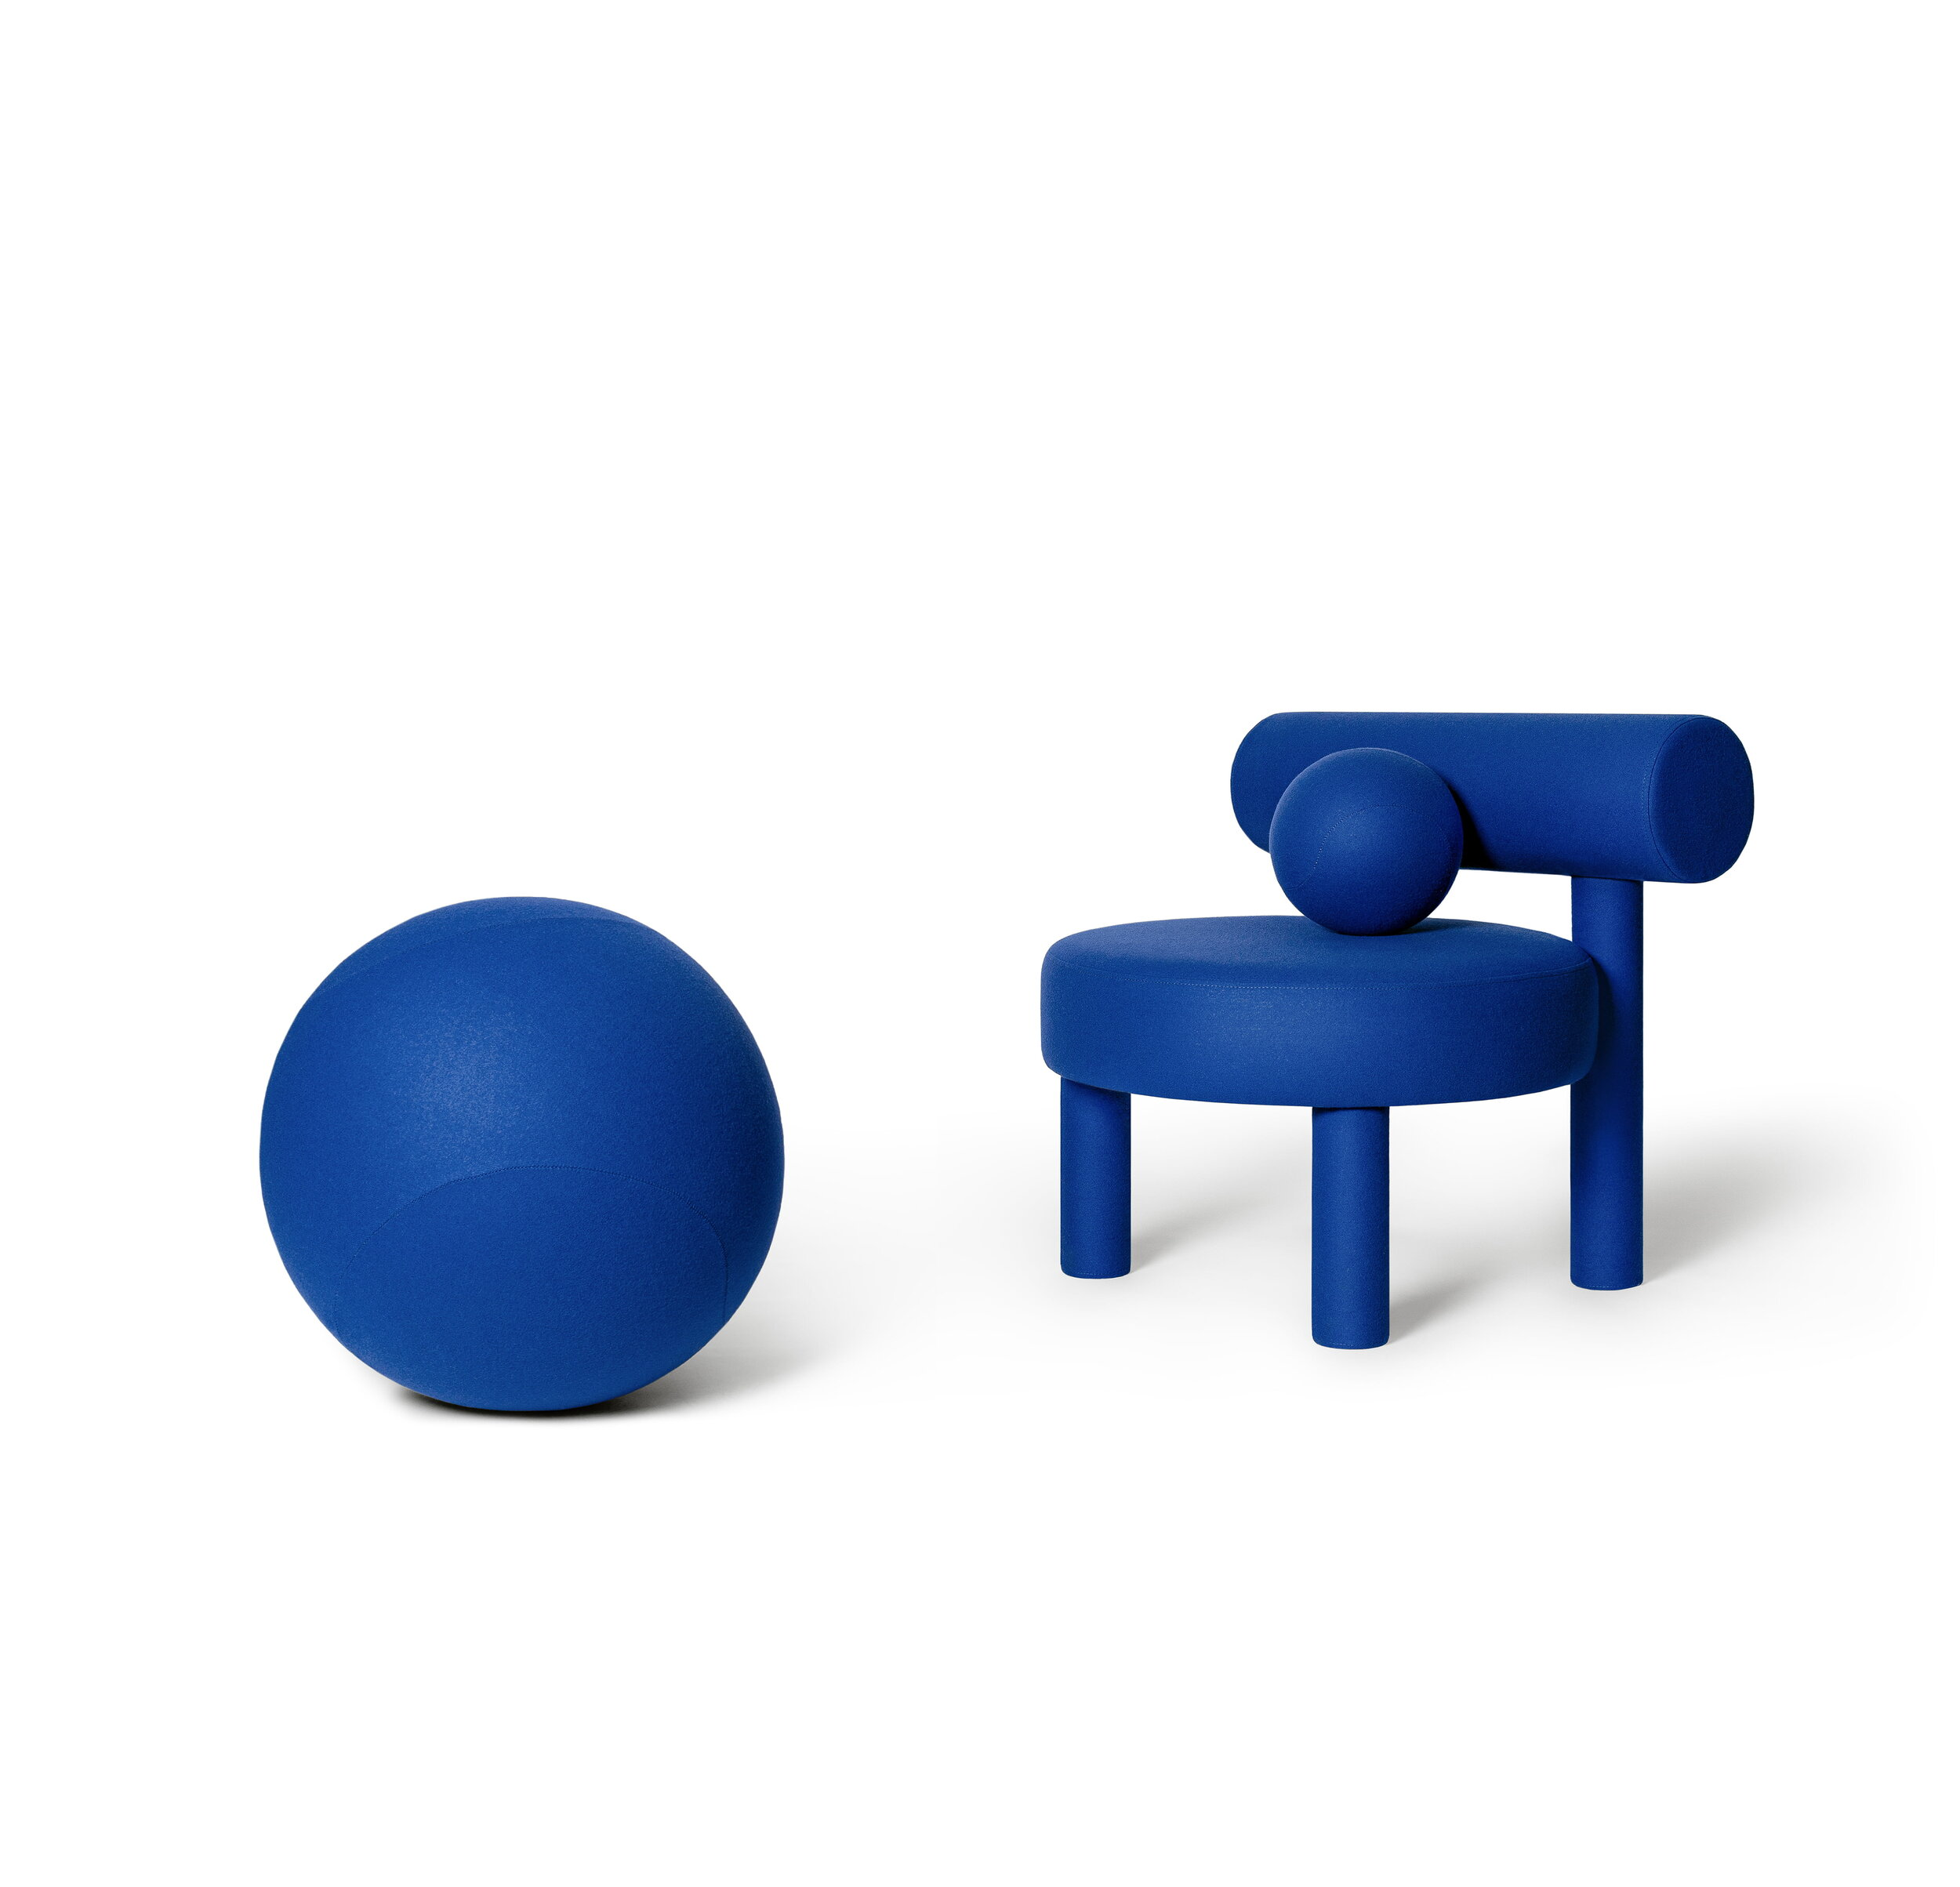 """Low Chair Gropius CS1 - New NOOM furniture collection is dedicated to the 100th anniversary of the founding of the Bauhaus School in Germany. Ideas of functionalism and conciseness, the combination of craft and art, buildings and objects formed by a composition of simple geometric shapes, are still relevant. NOOM furniture is a tribute to the great thinkers who formed the modernist principles and brought them to life.   The designer has """"gathered"""" the shape of this chair from balls and cylinders. A round pillow and an ottoman appeal to interact: to pump, to play, to bubble.  All products in the collection are called by names of famous modernist artists and architects.   Matter of Stuff"""